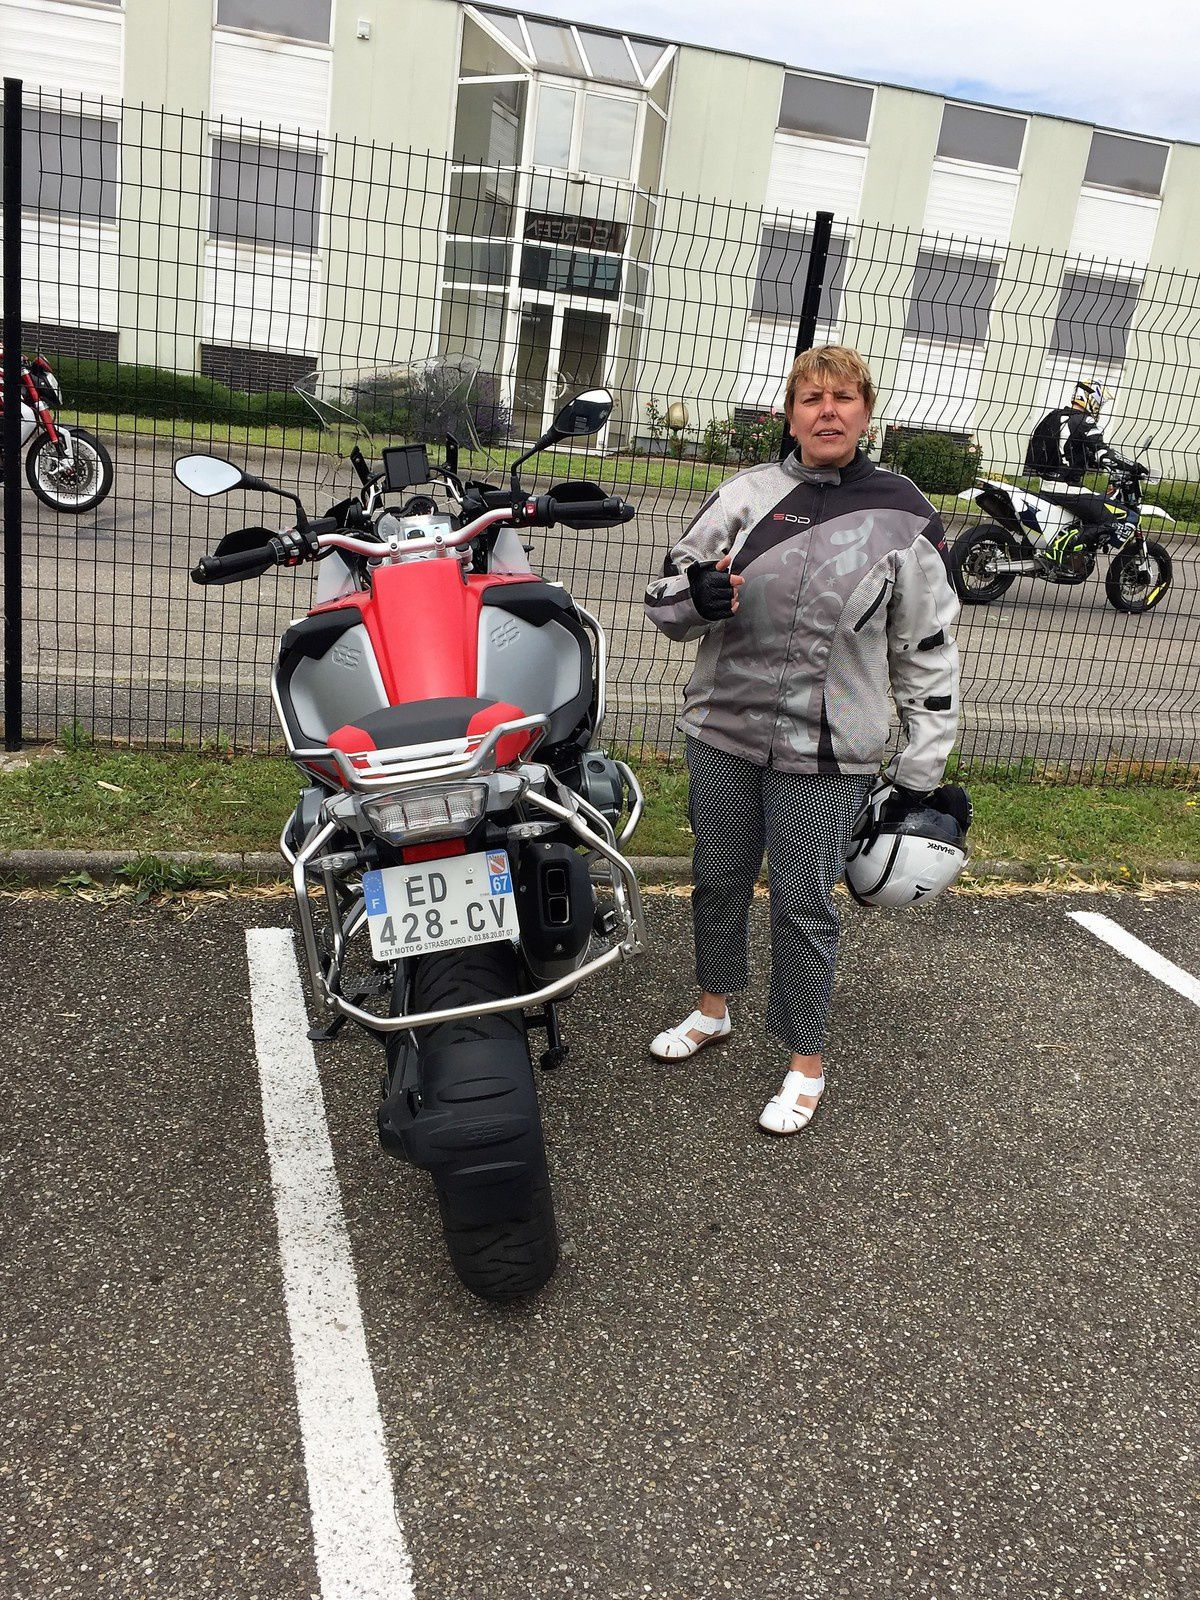 Goldwing - J'ai essayé la fameuse GS 1200 adventure